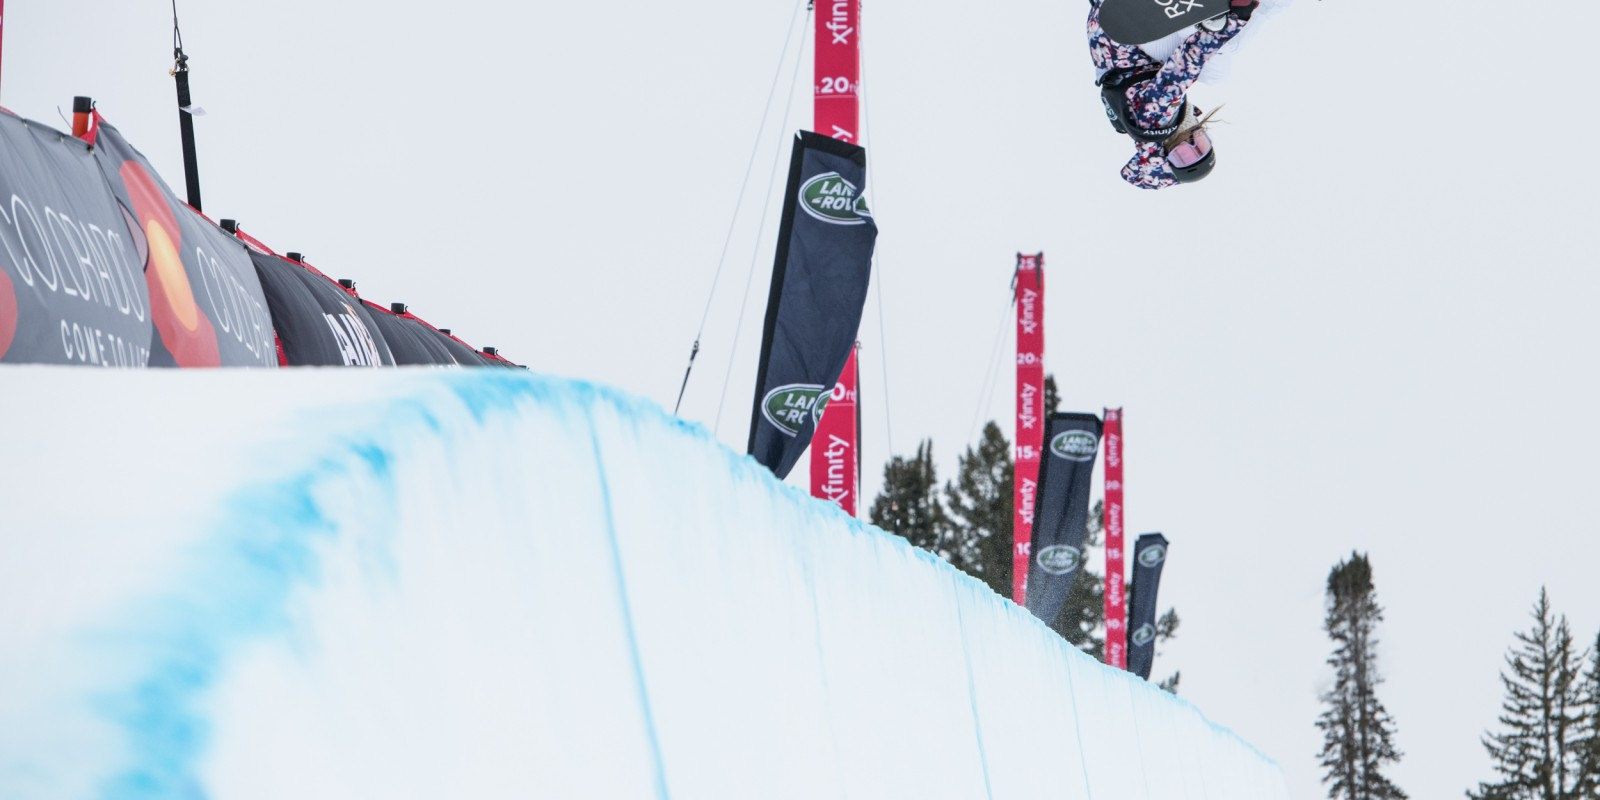 Images from the 2021 Aspen Snowboard World Champs